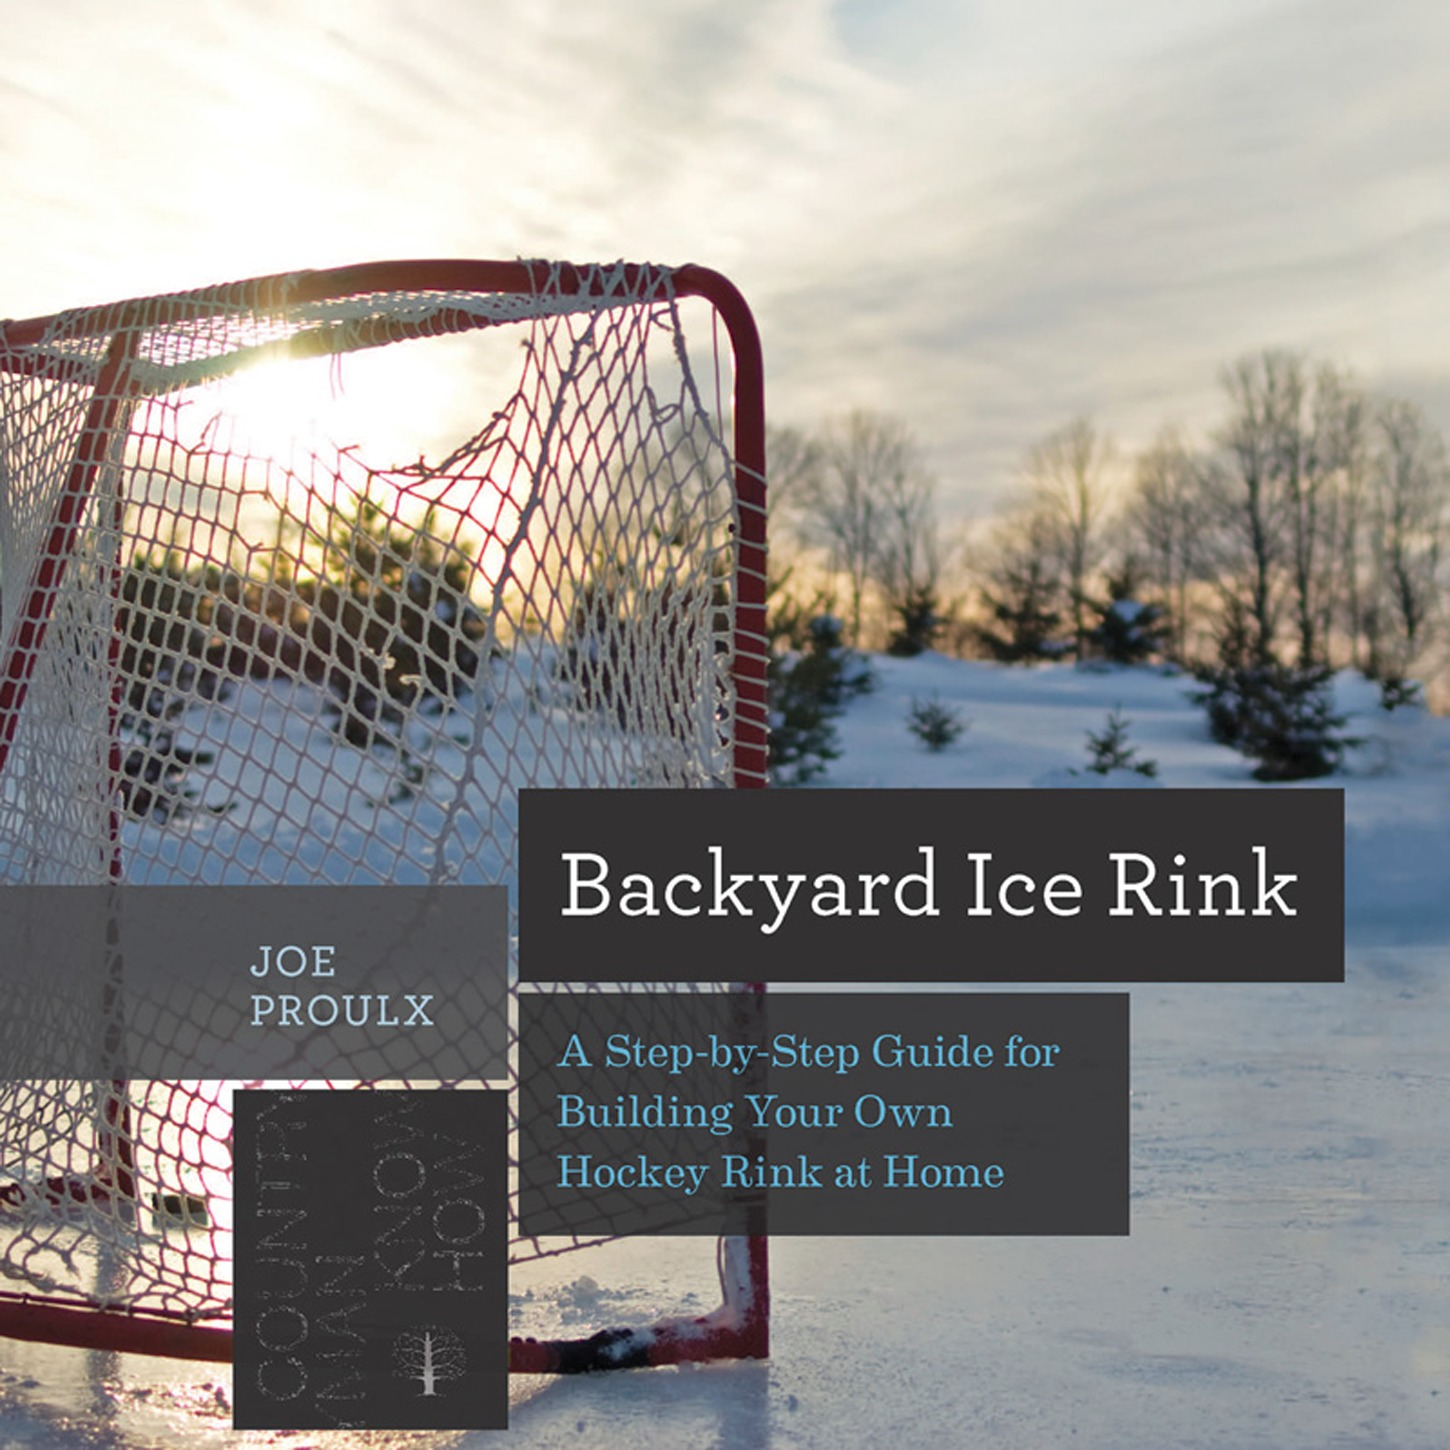 Backyard Ice Rink : A Step-By-Step Guide For Building Your